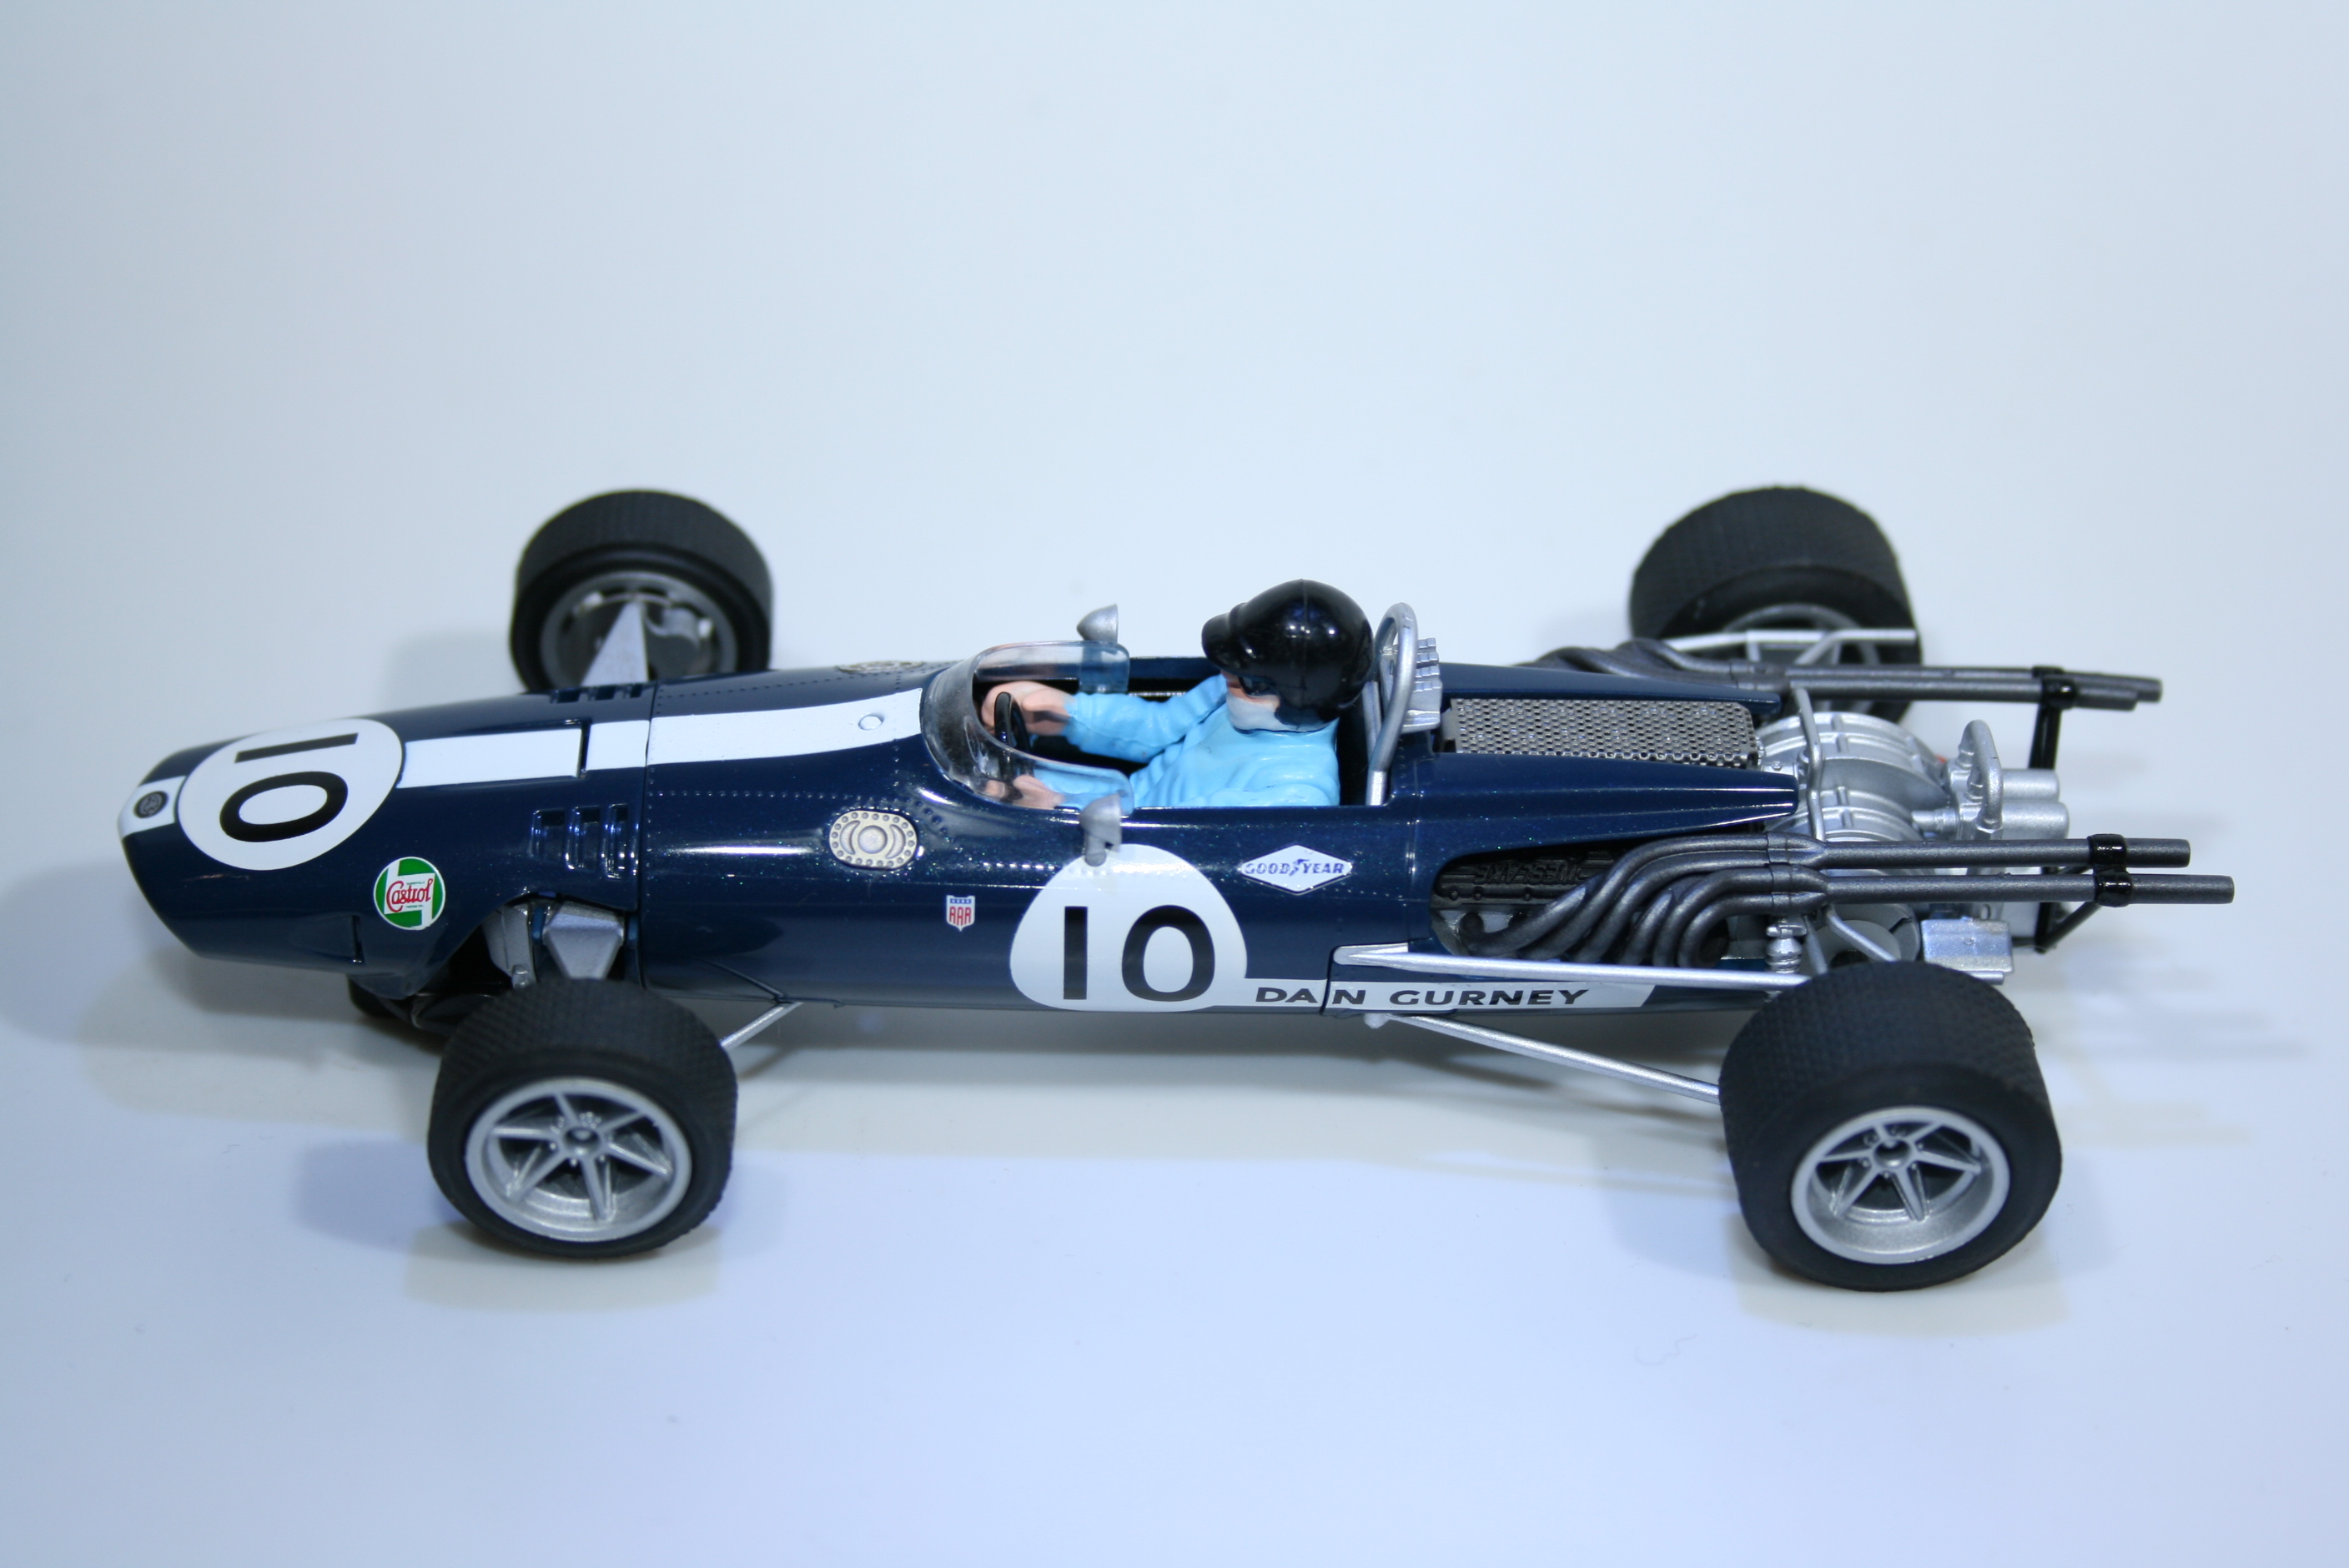 586 Eagle Weslake AAR102 1967 D Gurney Scalextric C3102 2011 Boxed